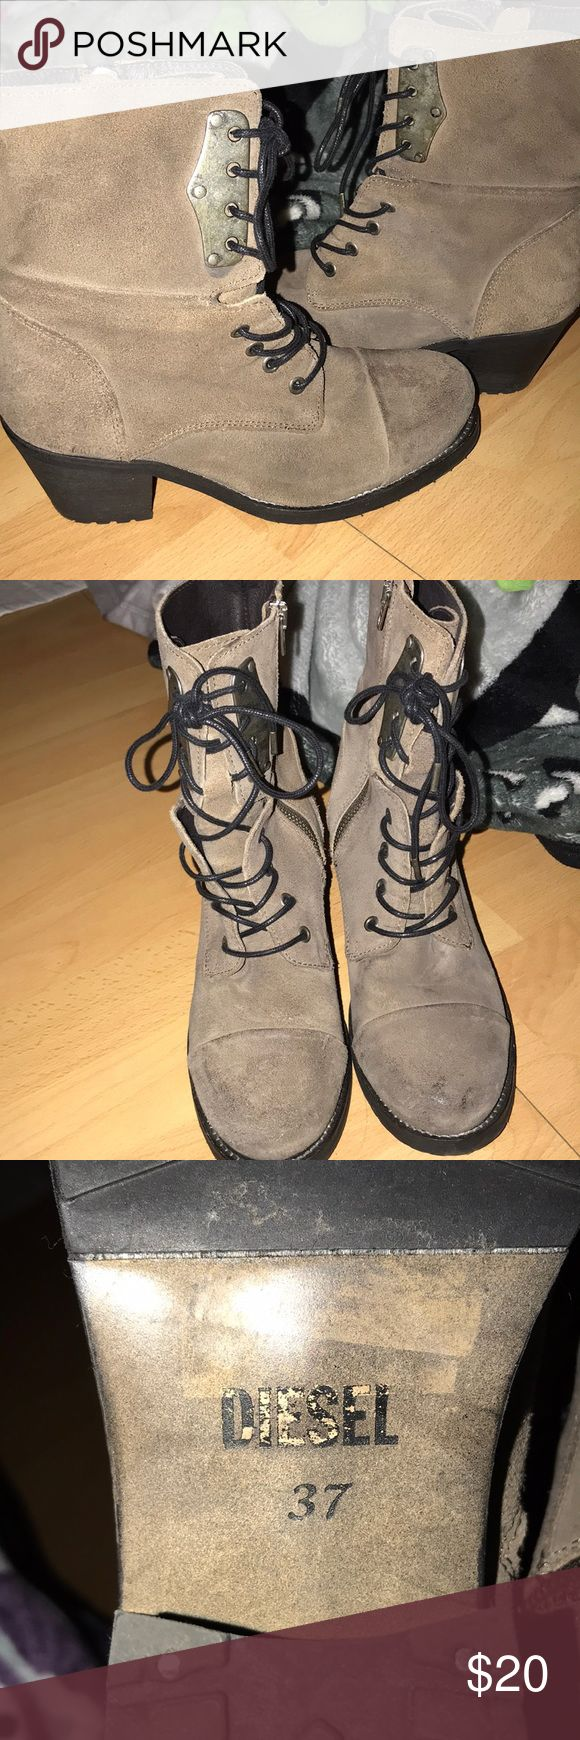 diesel boots. not fp fits 7-7.5 Free People Shoes Ankle Boots & Booties